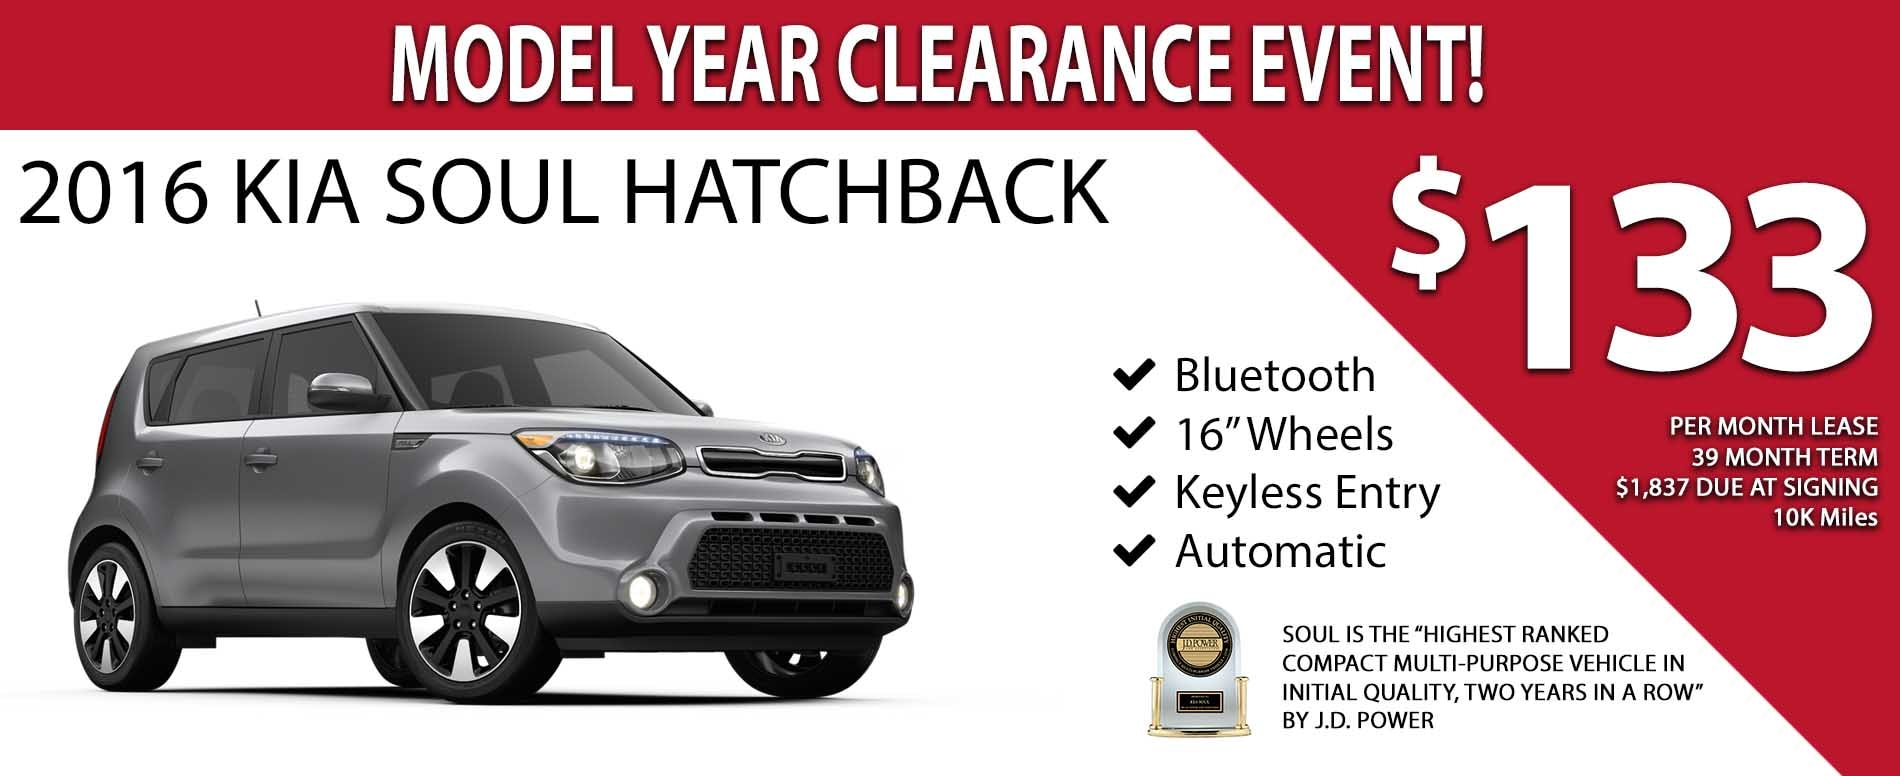 2016 Model Year Clearance Event - Lease a 2016 Kia Soul for only $133 per month! - Exp. 02/28/2017